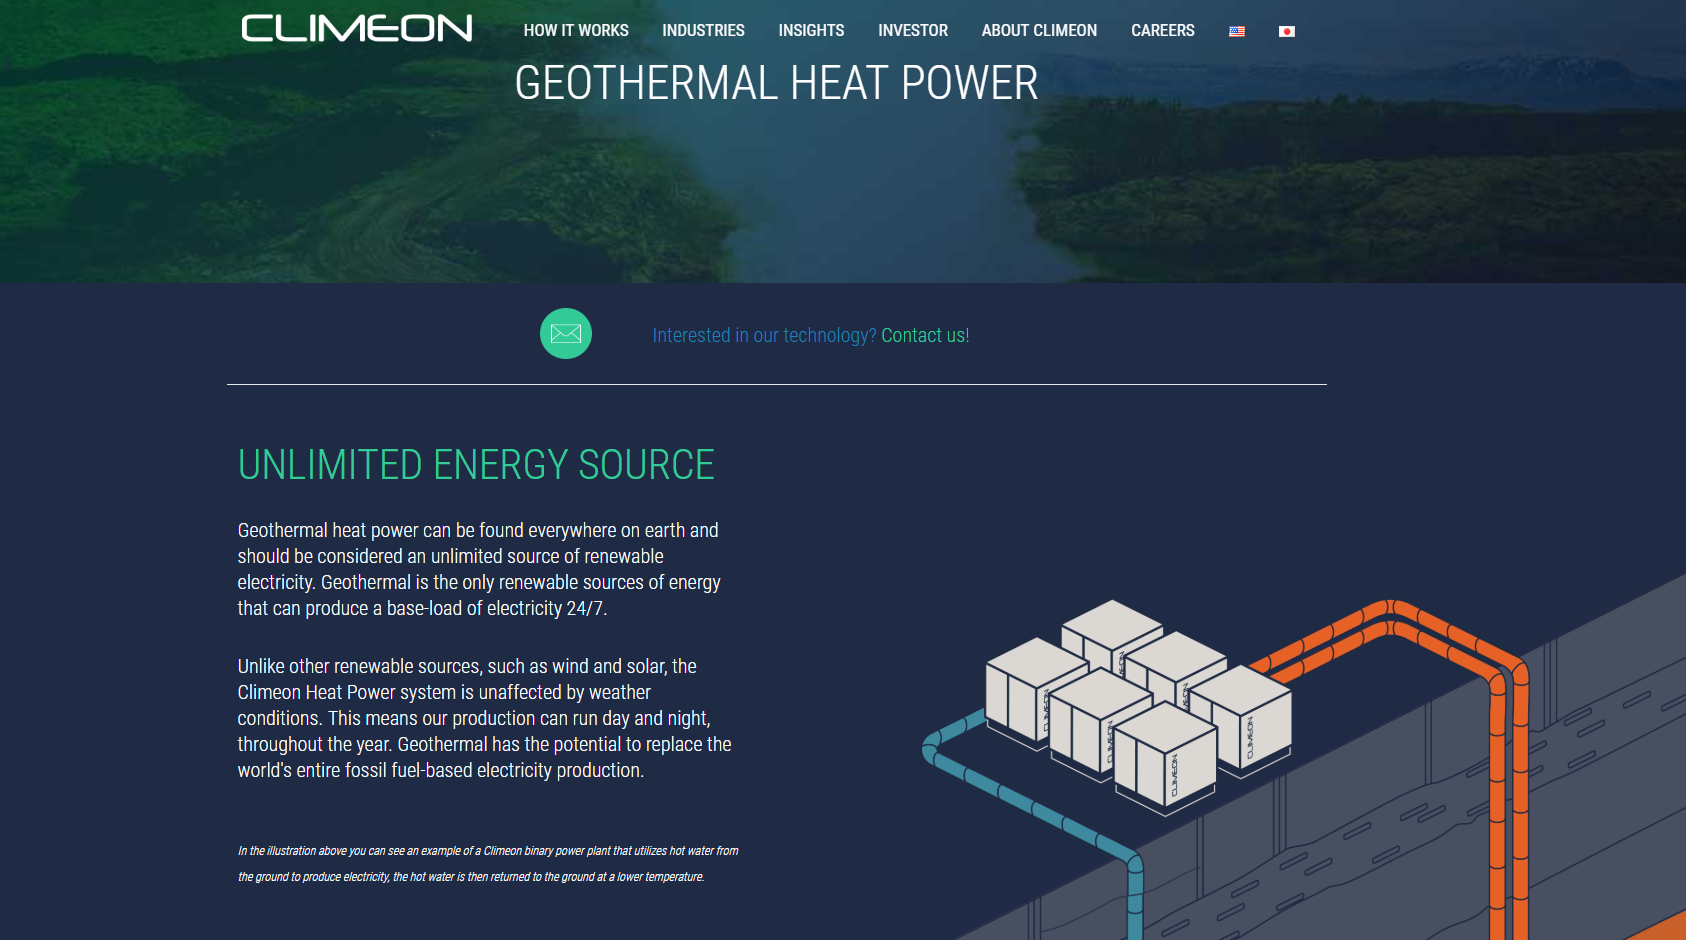 clemeon-geothermal-1